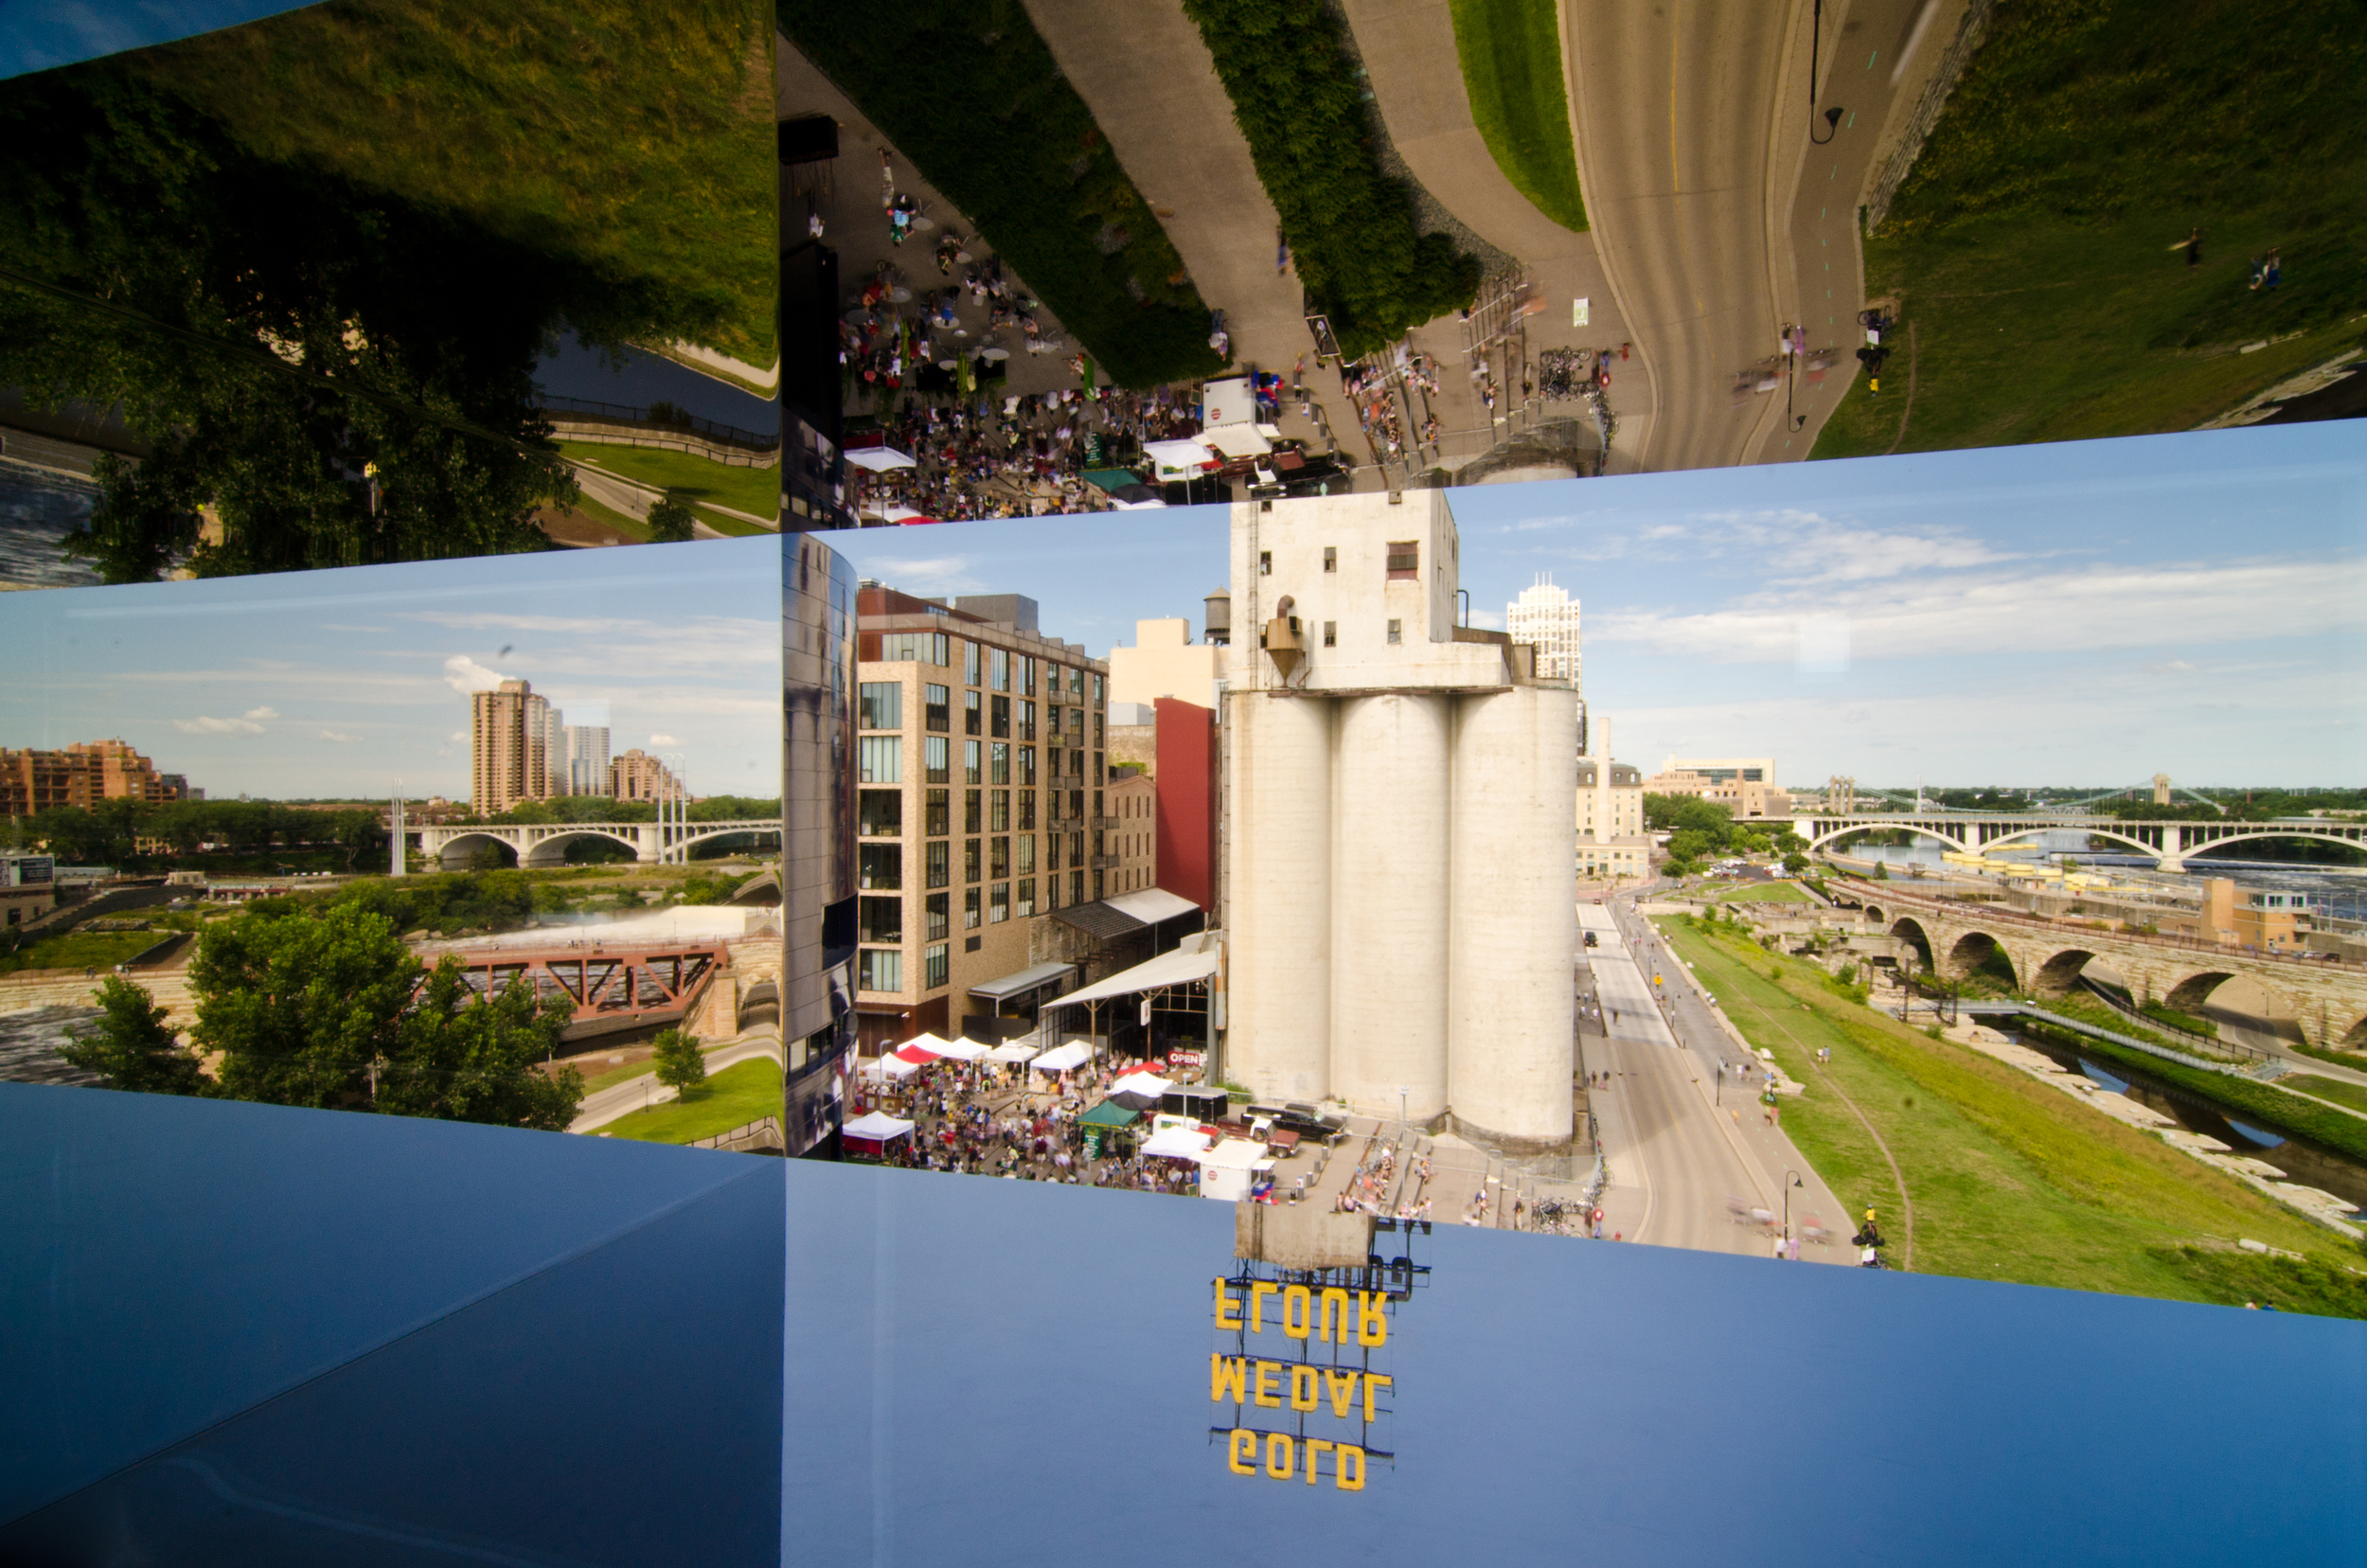 Reflections of Mill City